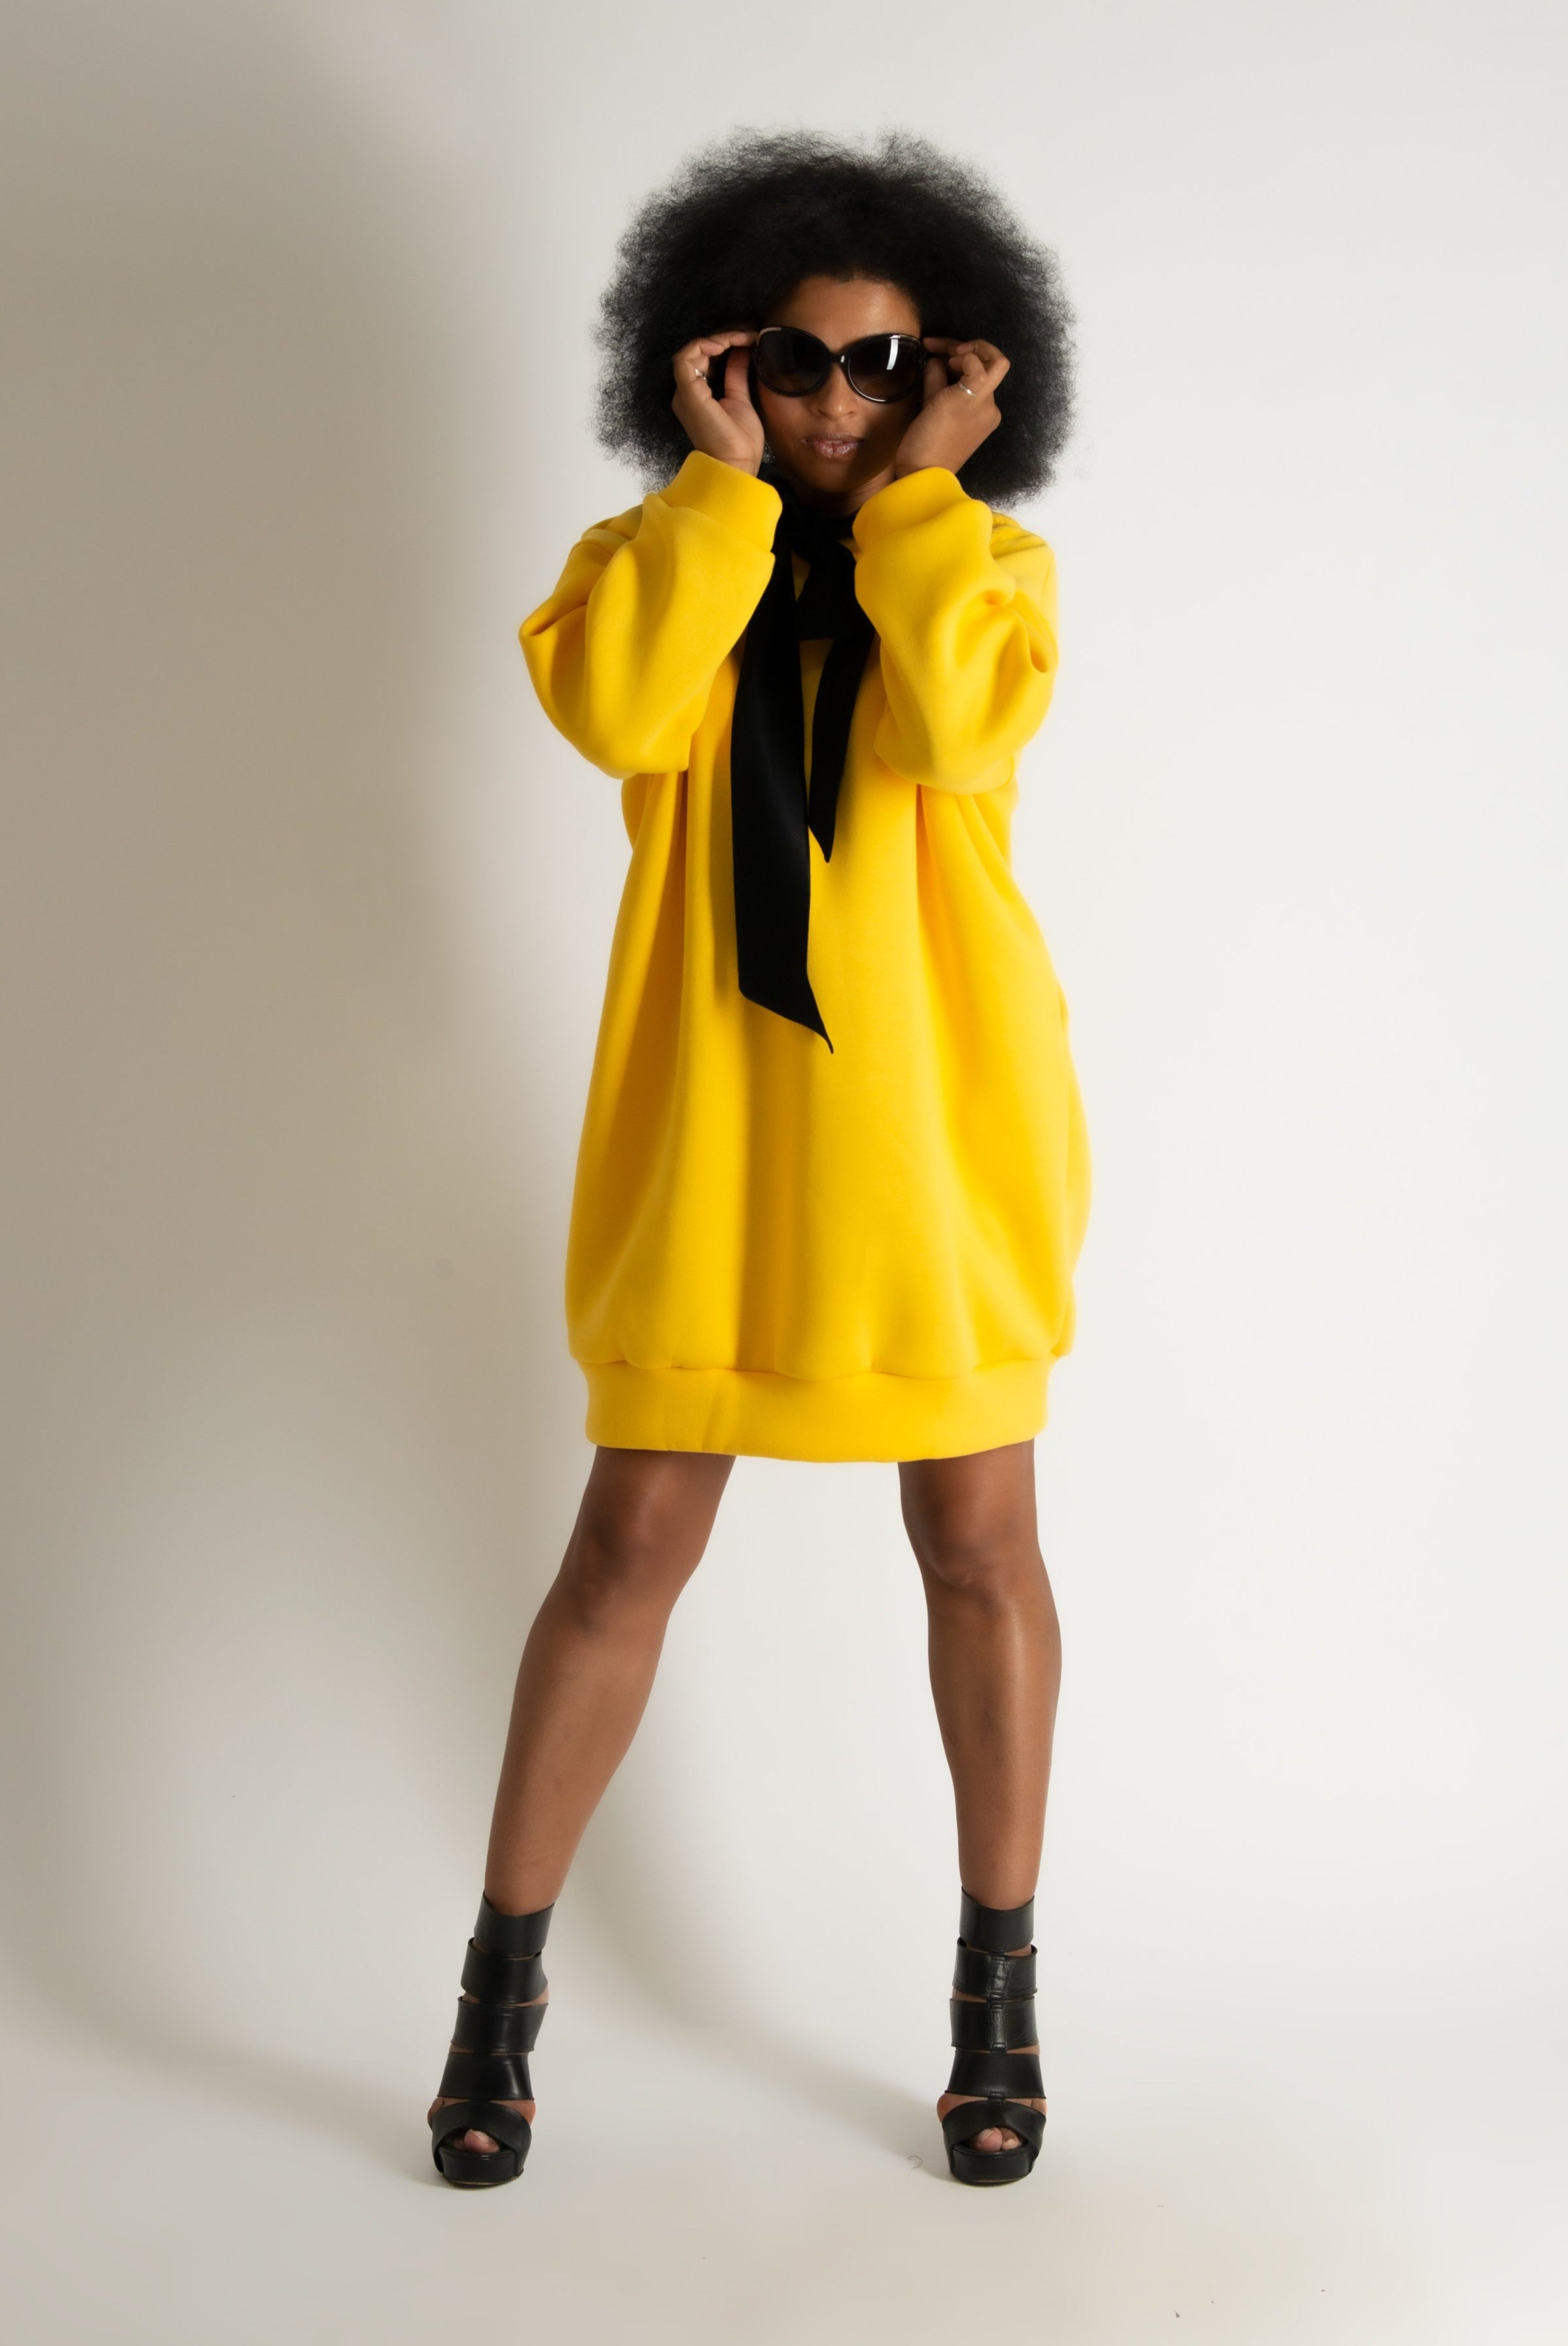 Yellow hooded dress